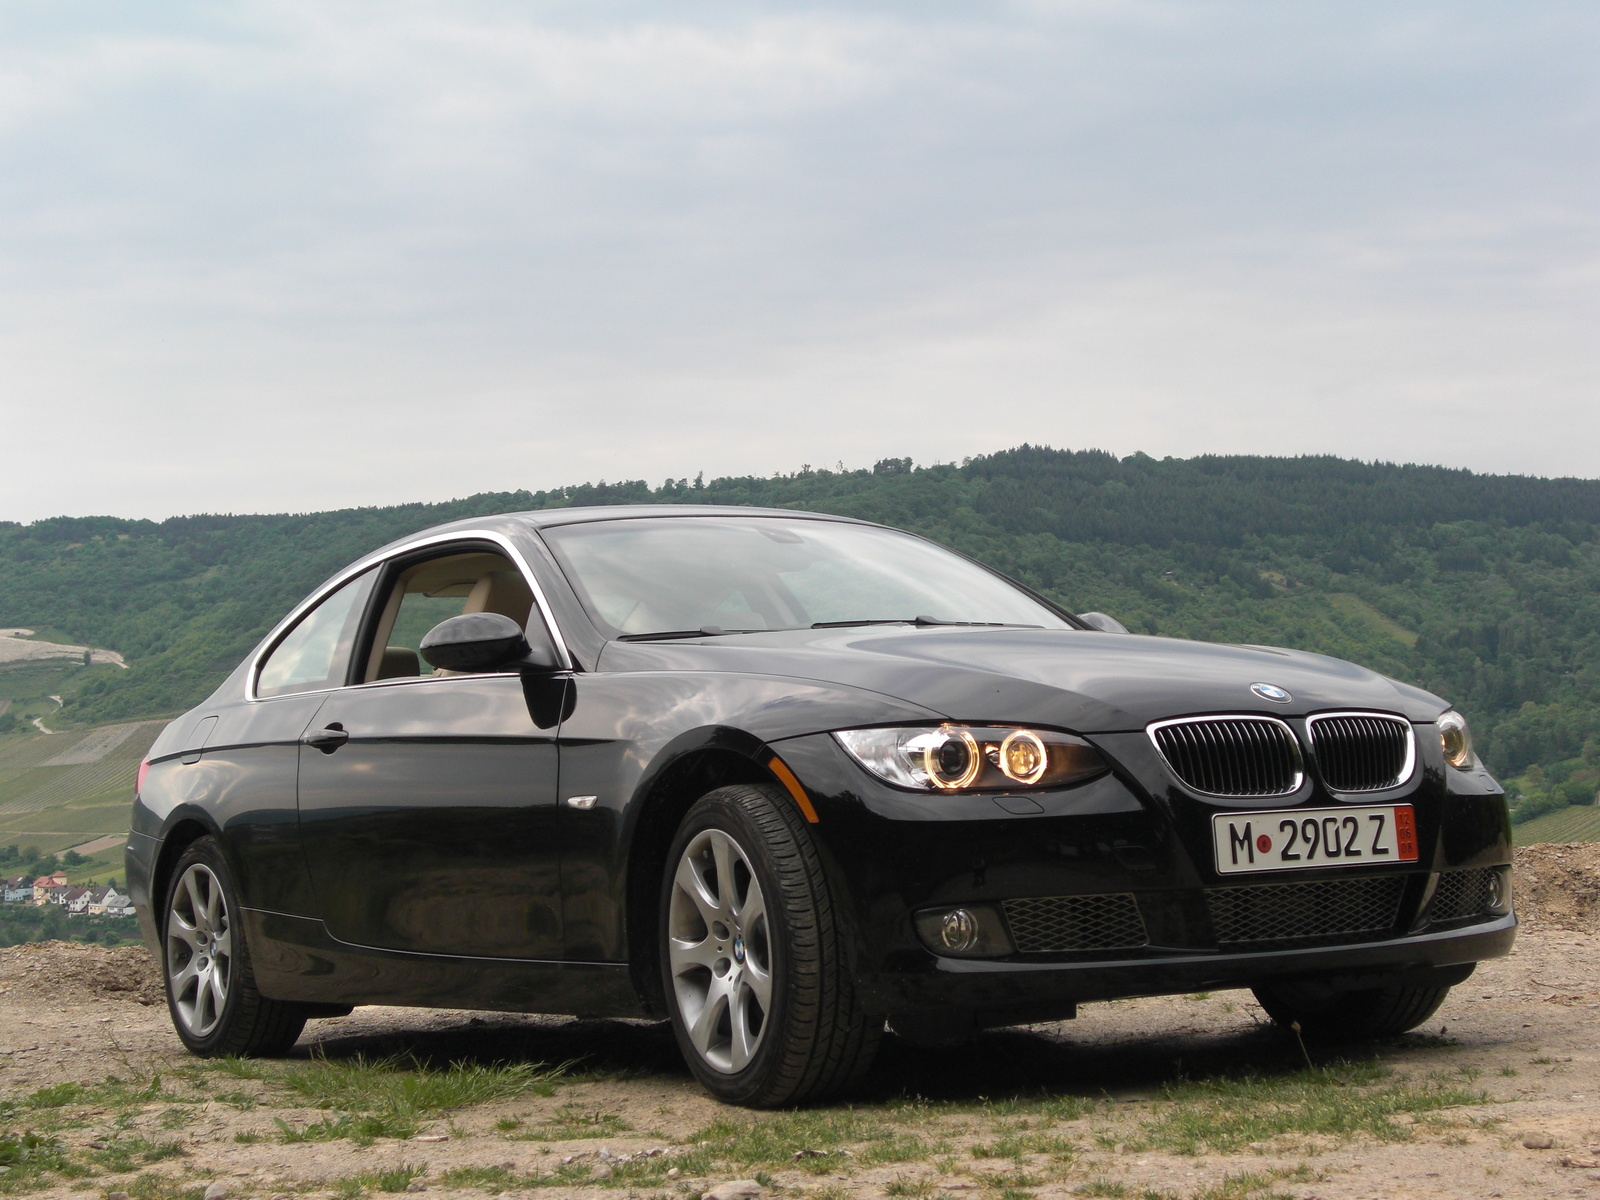 2008 BMW 3 Series - Pictures - CarGurus